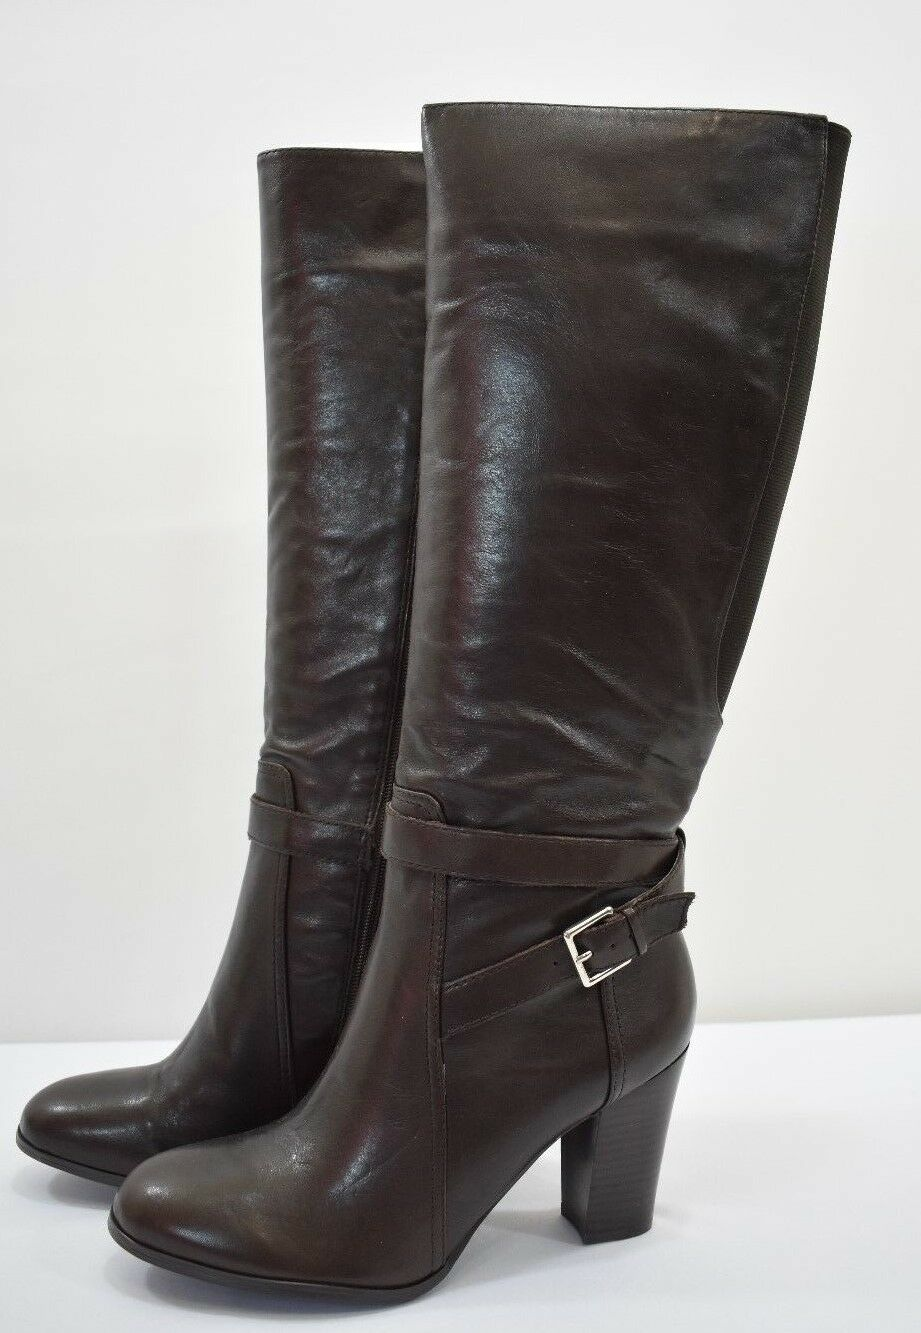 MARC FISHER MFKESSLER tall wedge daRk brownLEATHER BOOTS SZ 9.5M NEW IN BOX